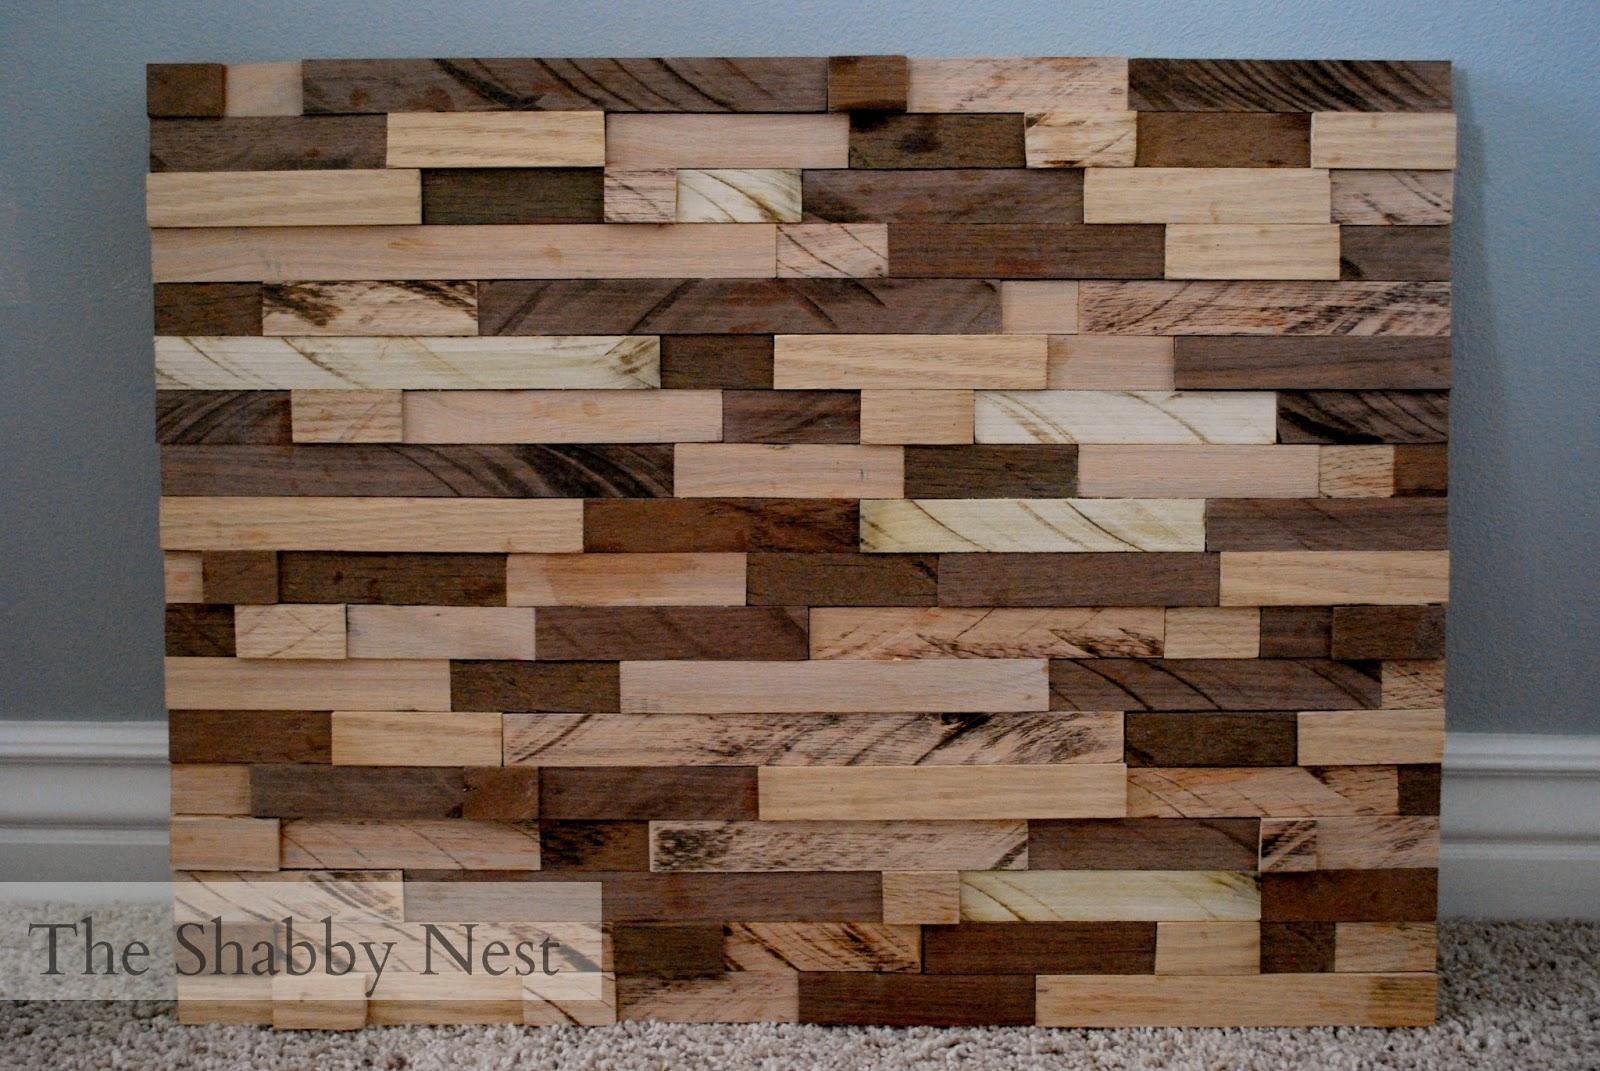 The Shabby Nest: January 2013 Intended For Talking Dead Wood Wall Art (View 17 of 20)